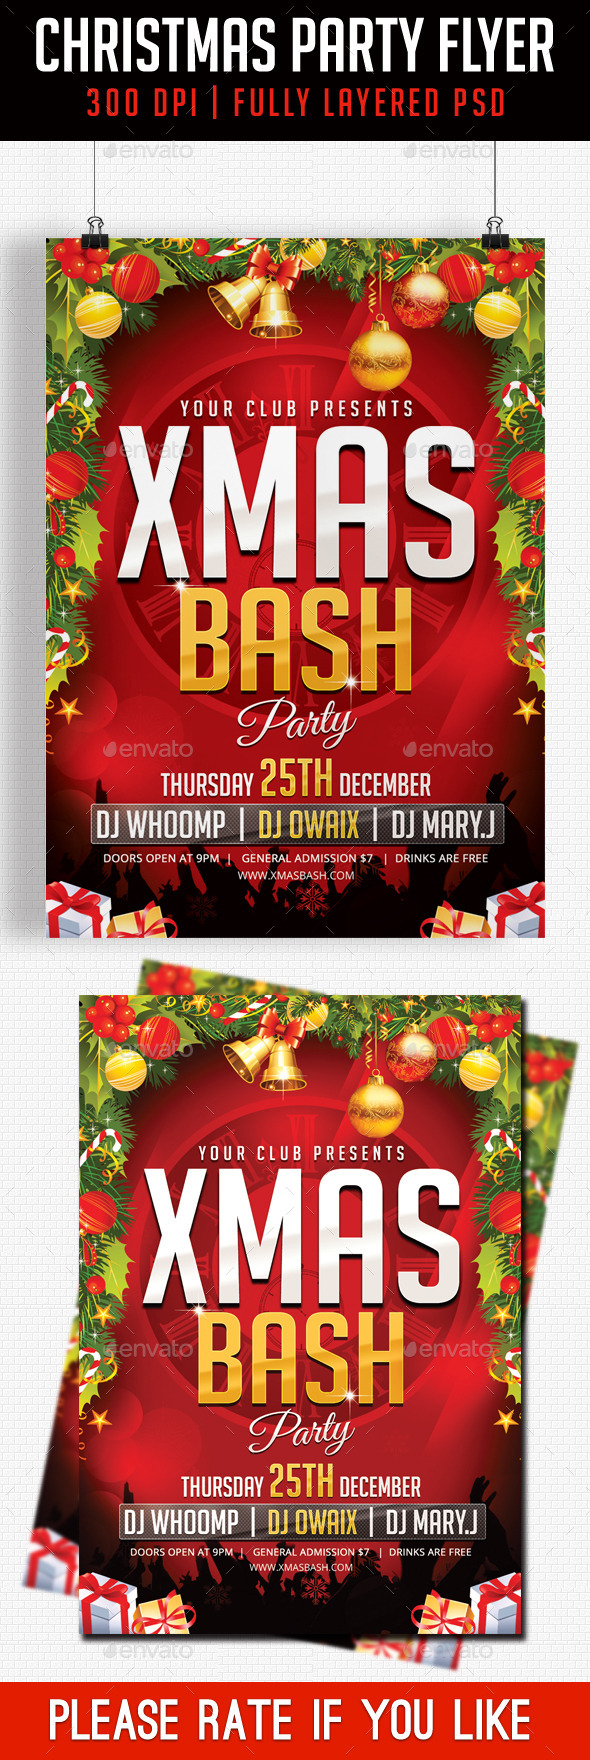 Christmas Party Flyer 2014 - Clubs & Parties Events